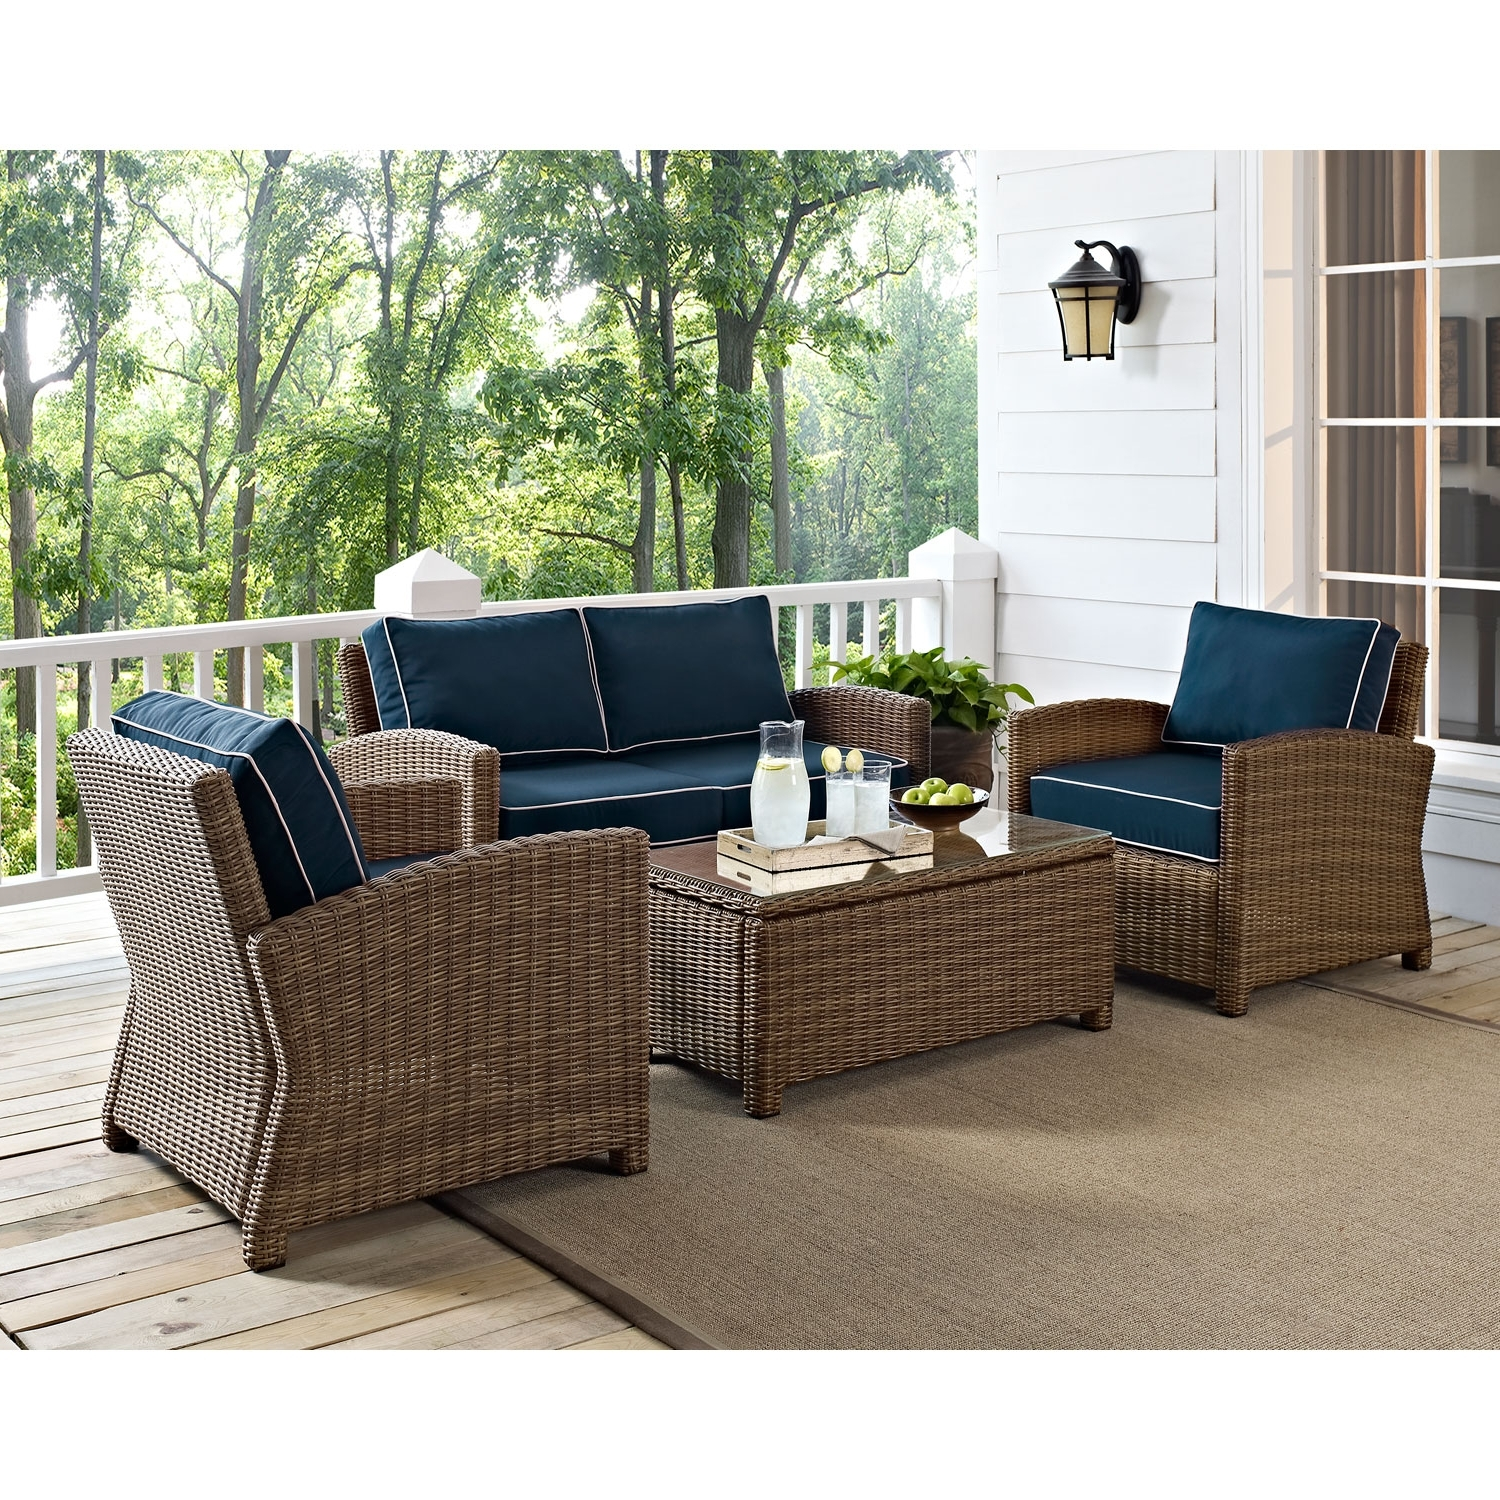 Patio Conversation Sets With Cushions Regarding Most Recently Released Crosley Furniture Bradenton 4 Piece Outdoor Wicker Seating Set With (View 7 of 15)